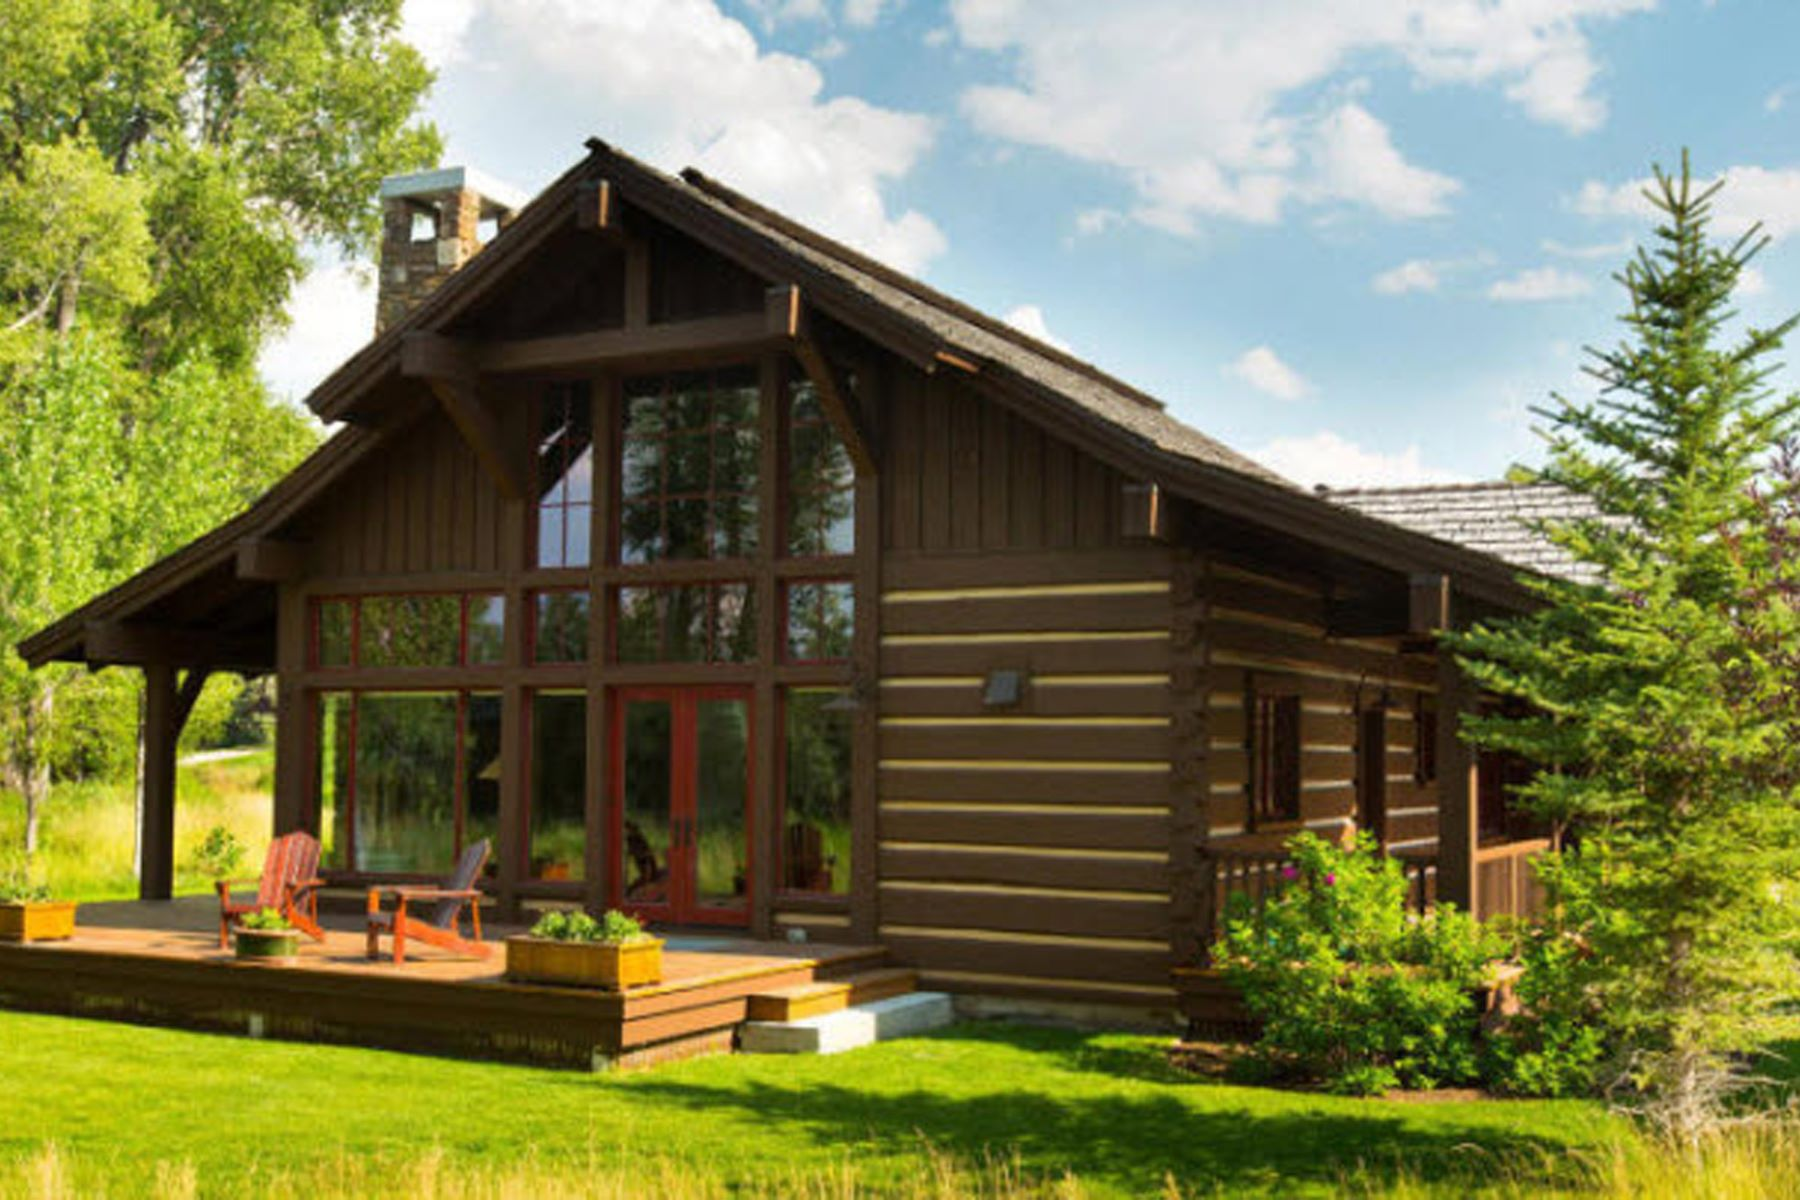 Single Family Home for Sale at Rare Find 833 Arnica Ct, Jackson, Wyoming, 83001 Jackson Hole, United States